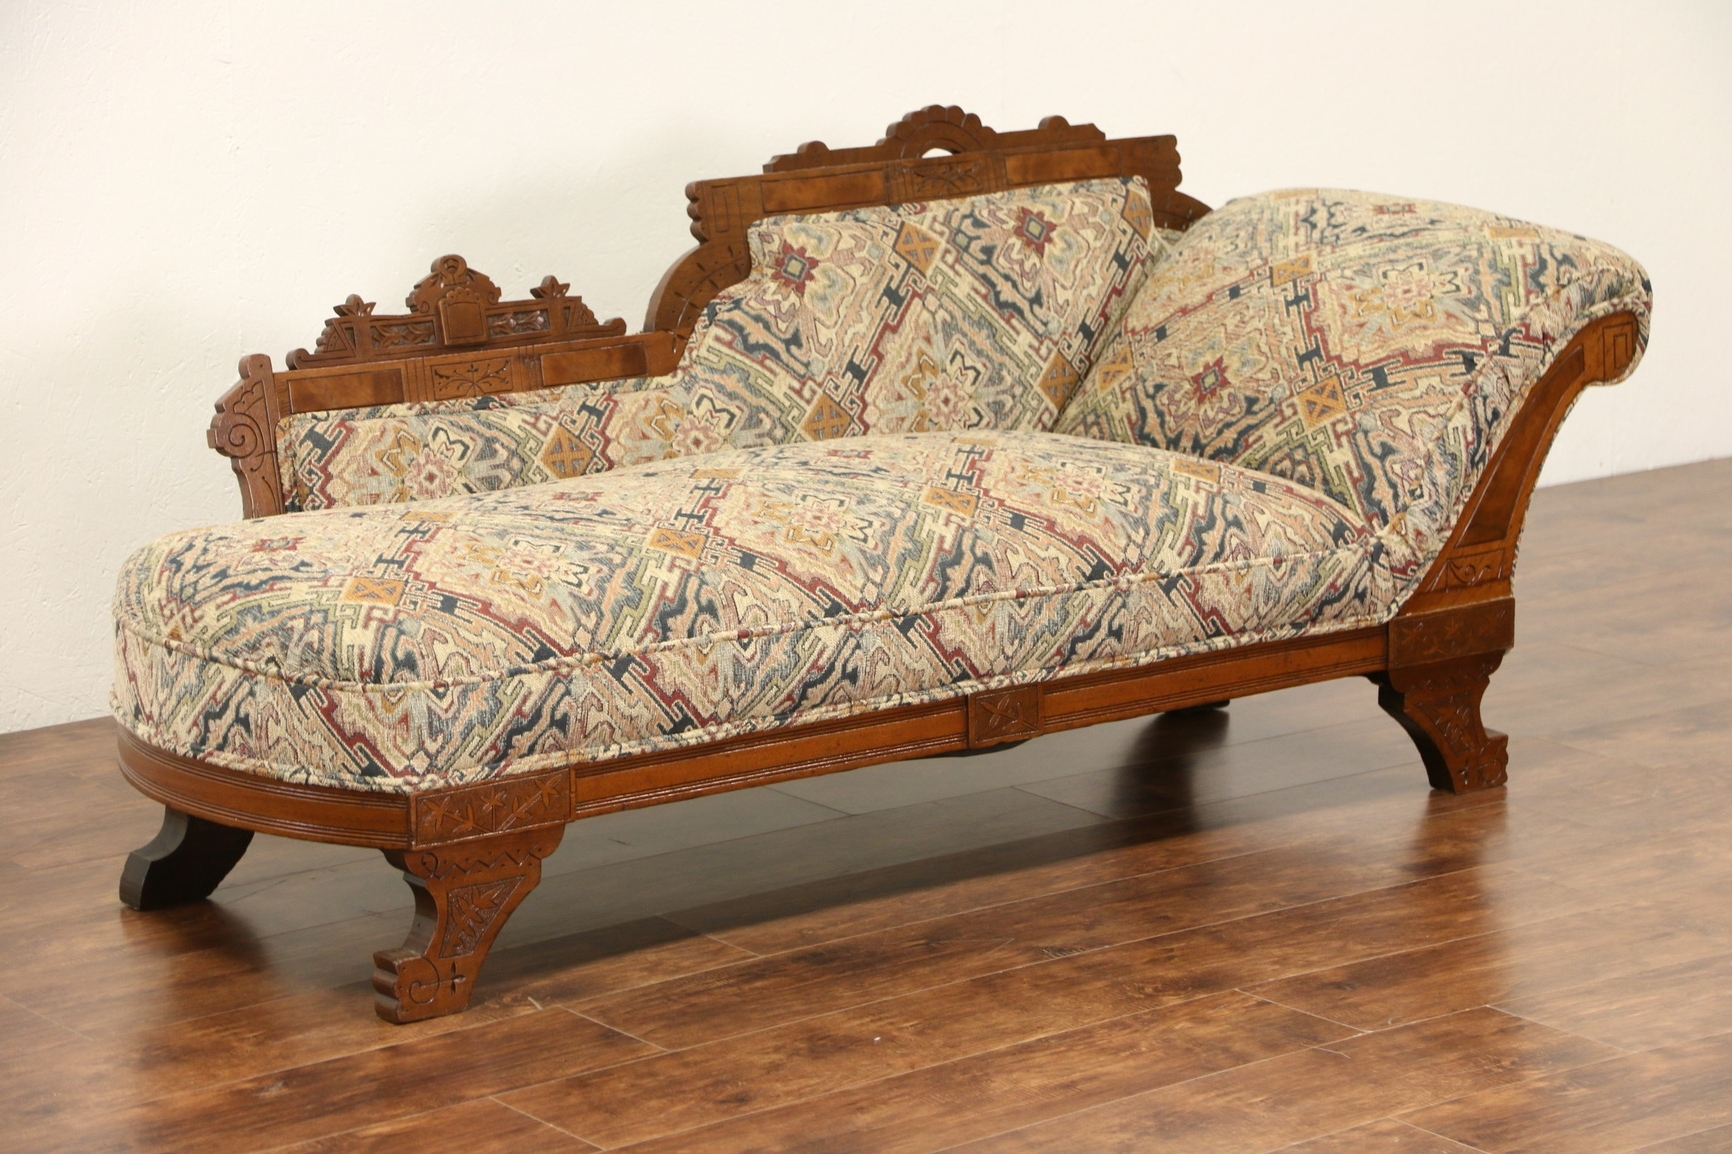 Antique Chaise Lounge Chairs Regarding Best And Newest Sold – Victorian Eastlake 1880 Antique Chaise Lounge Or Fainting (View 13 of 15)